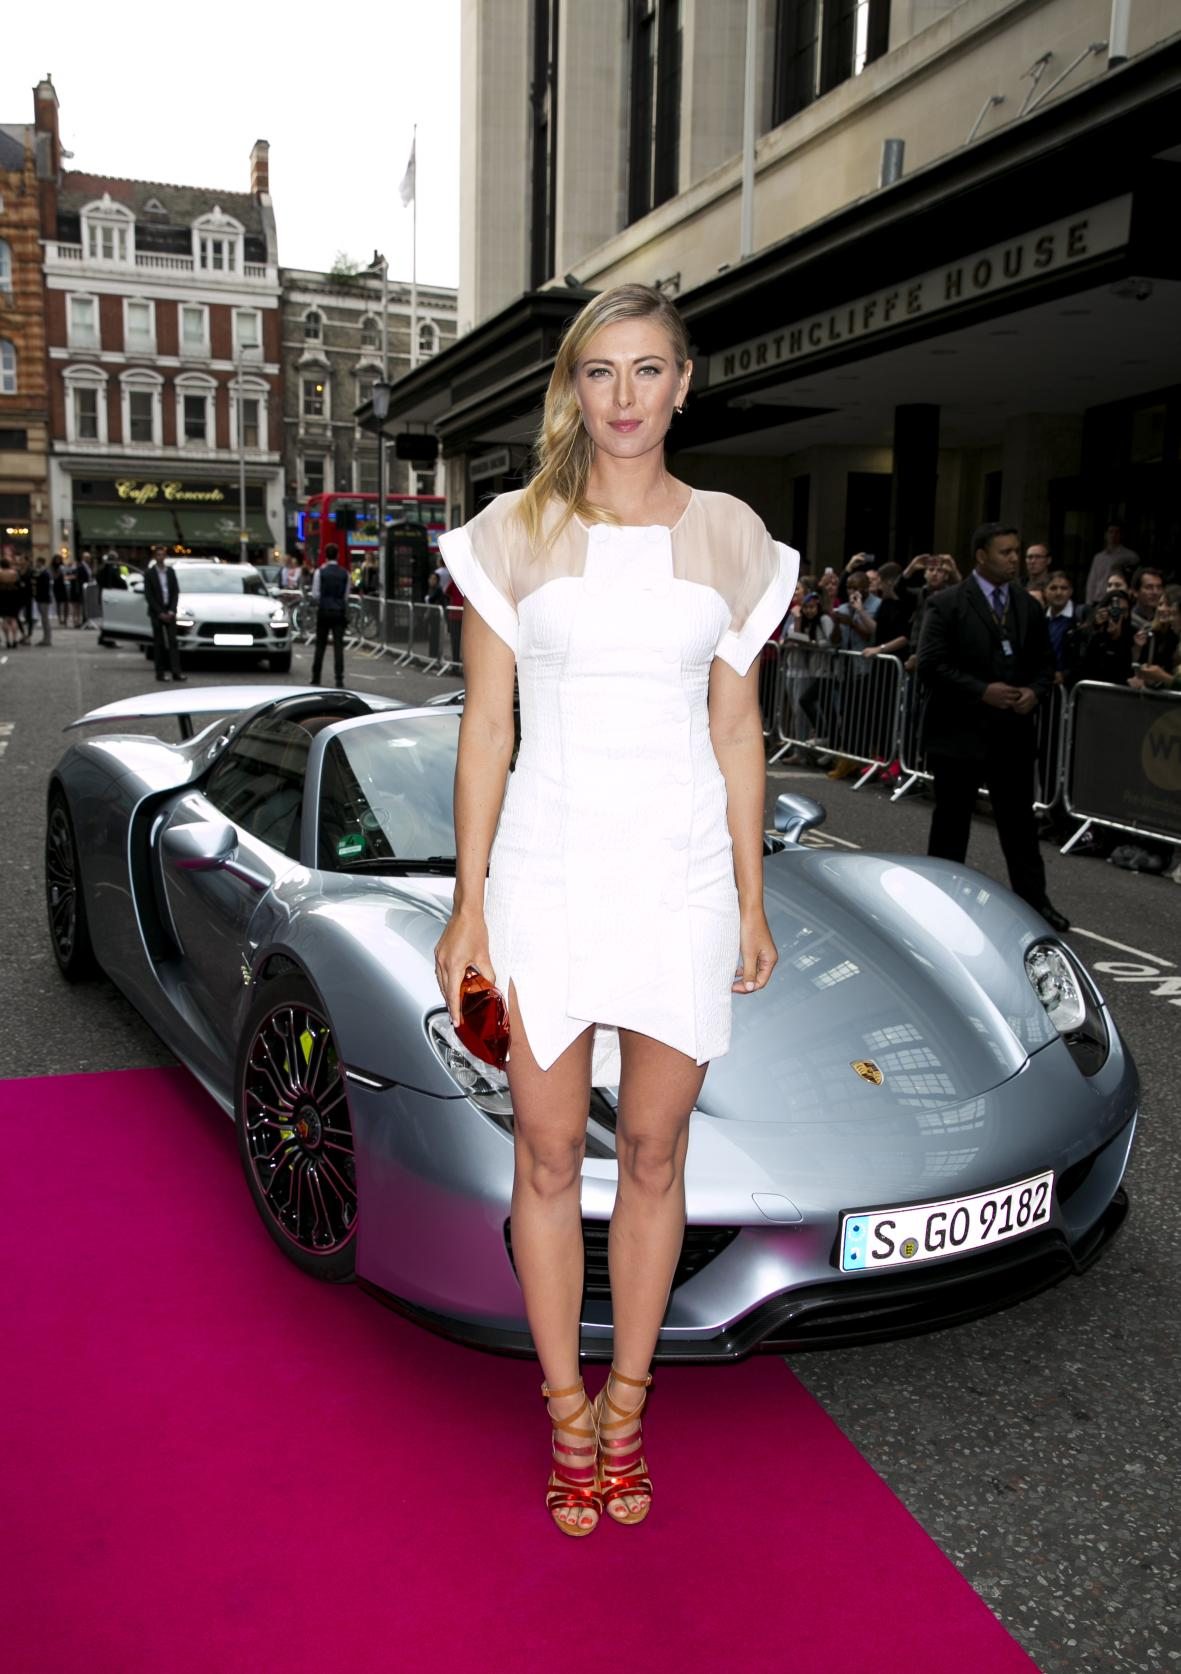 sharapova-and-mark-webber-get-off-a-porsche-918-spyder-at-pre-wimbledon-party-photo-gallery_4 Marvelous Porsche 918 Spyder Mark Webber Cars Trend